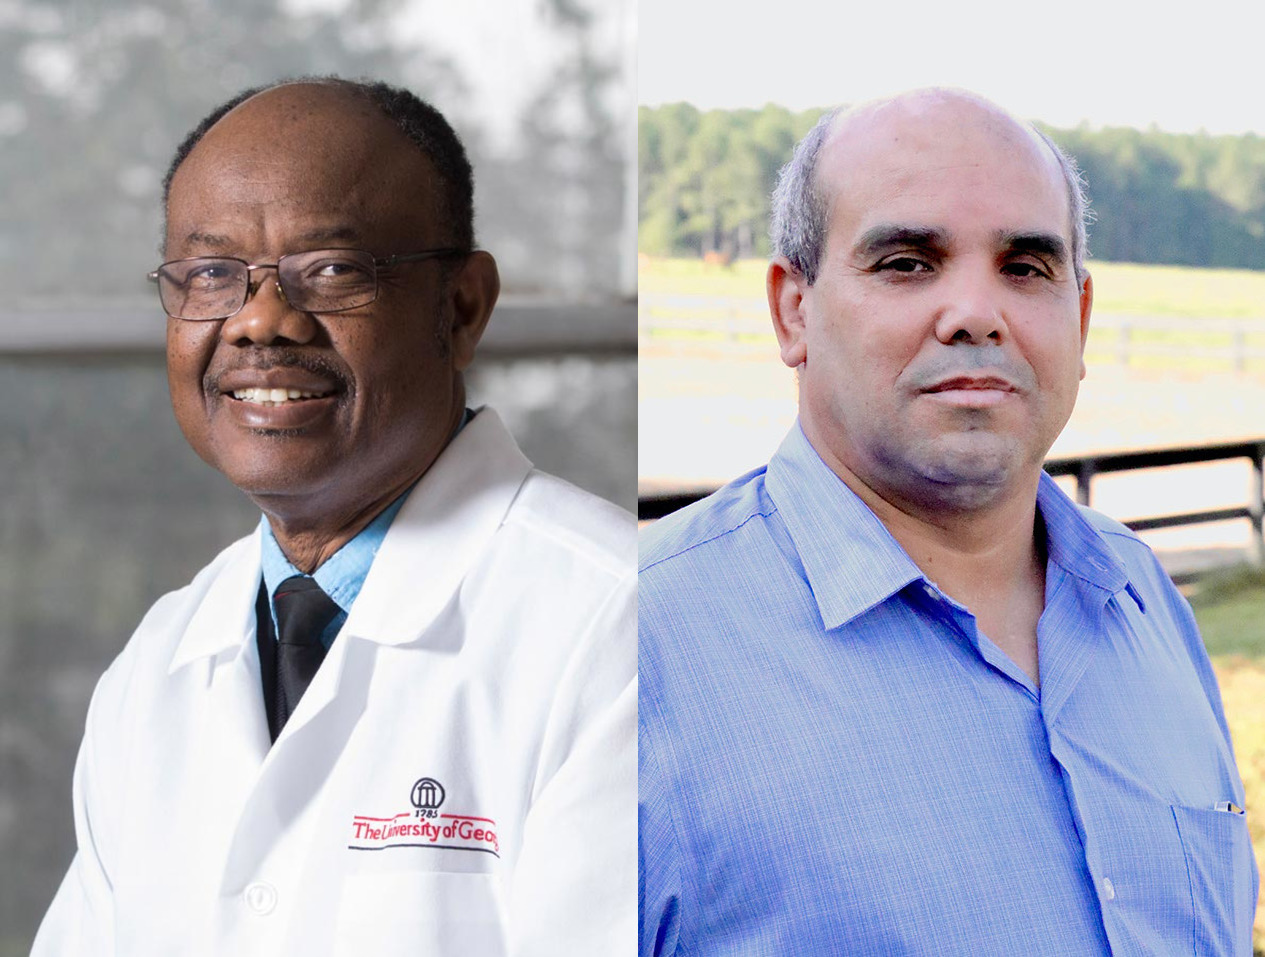 """To support efforts to isolate genes responsible for water intake, Aggrey and Rekaya have been awarded a grant through the U.S.-Egypt Science and Technology Joint Fund to pursue a project titled """"Improving the Efficiency of Water Intake Utilization in Poultry."""""""